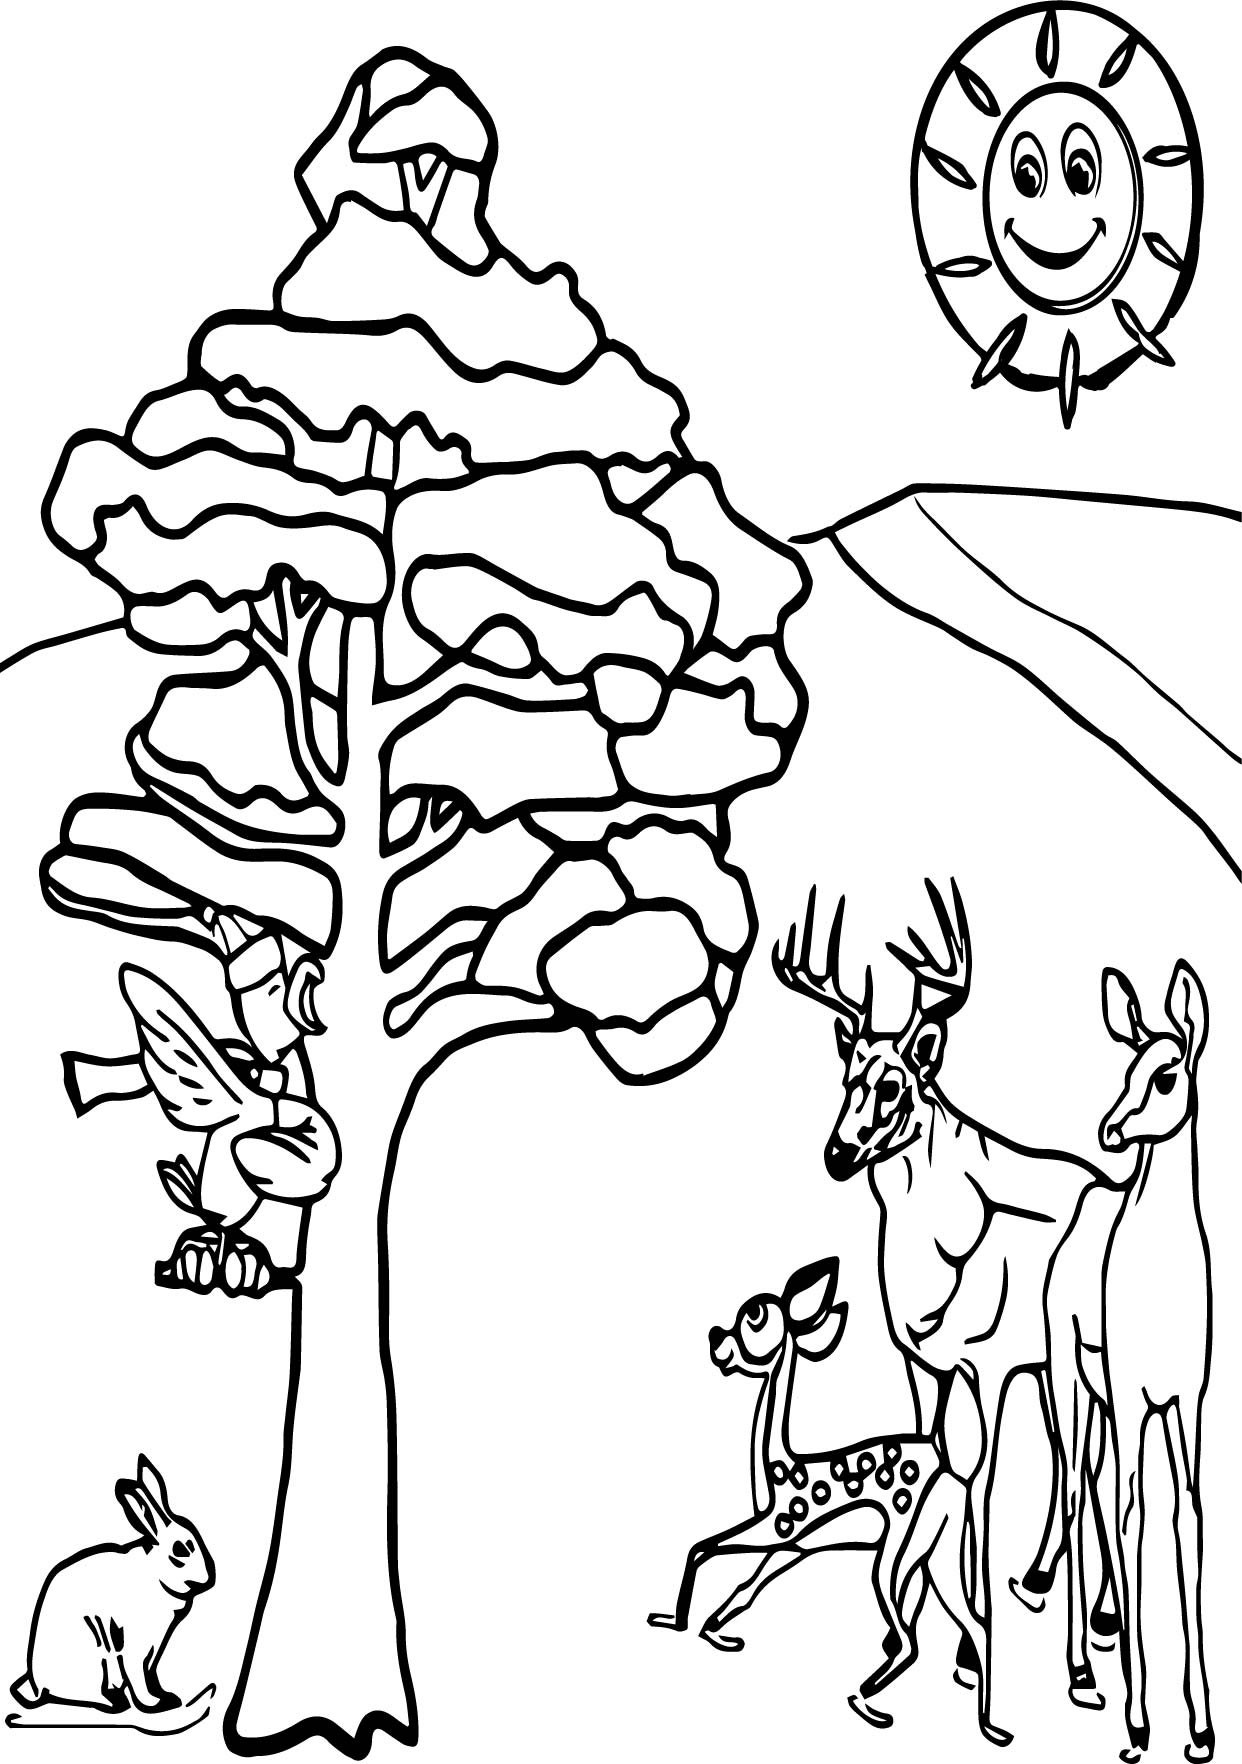 Winter Animals Coloring Page | Wecoloringpage.com | coloring sheets winter animals